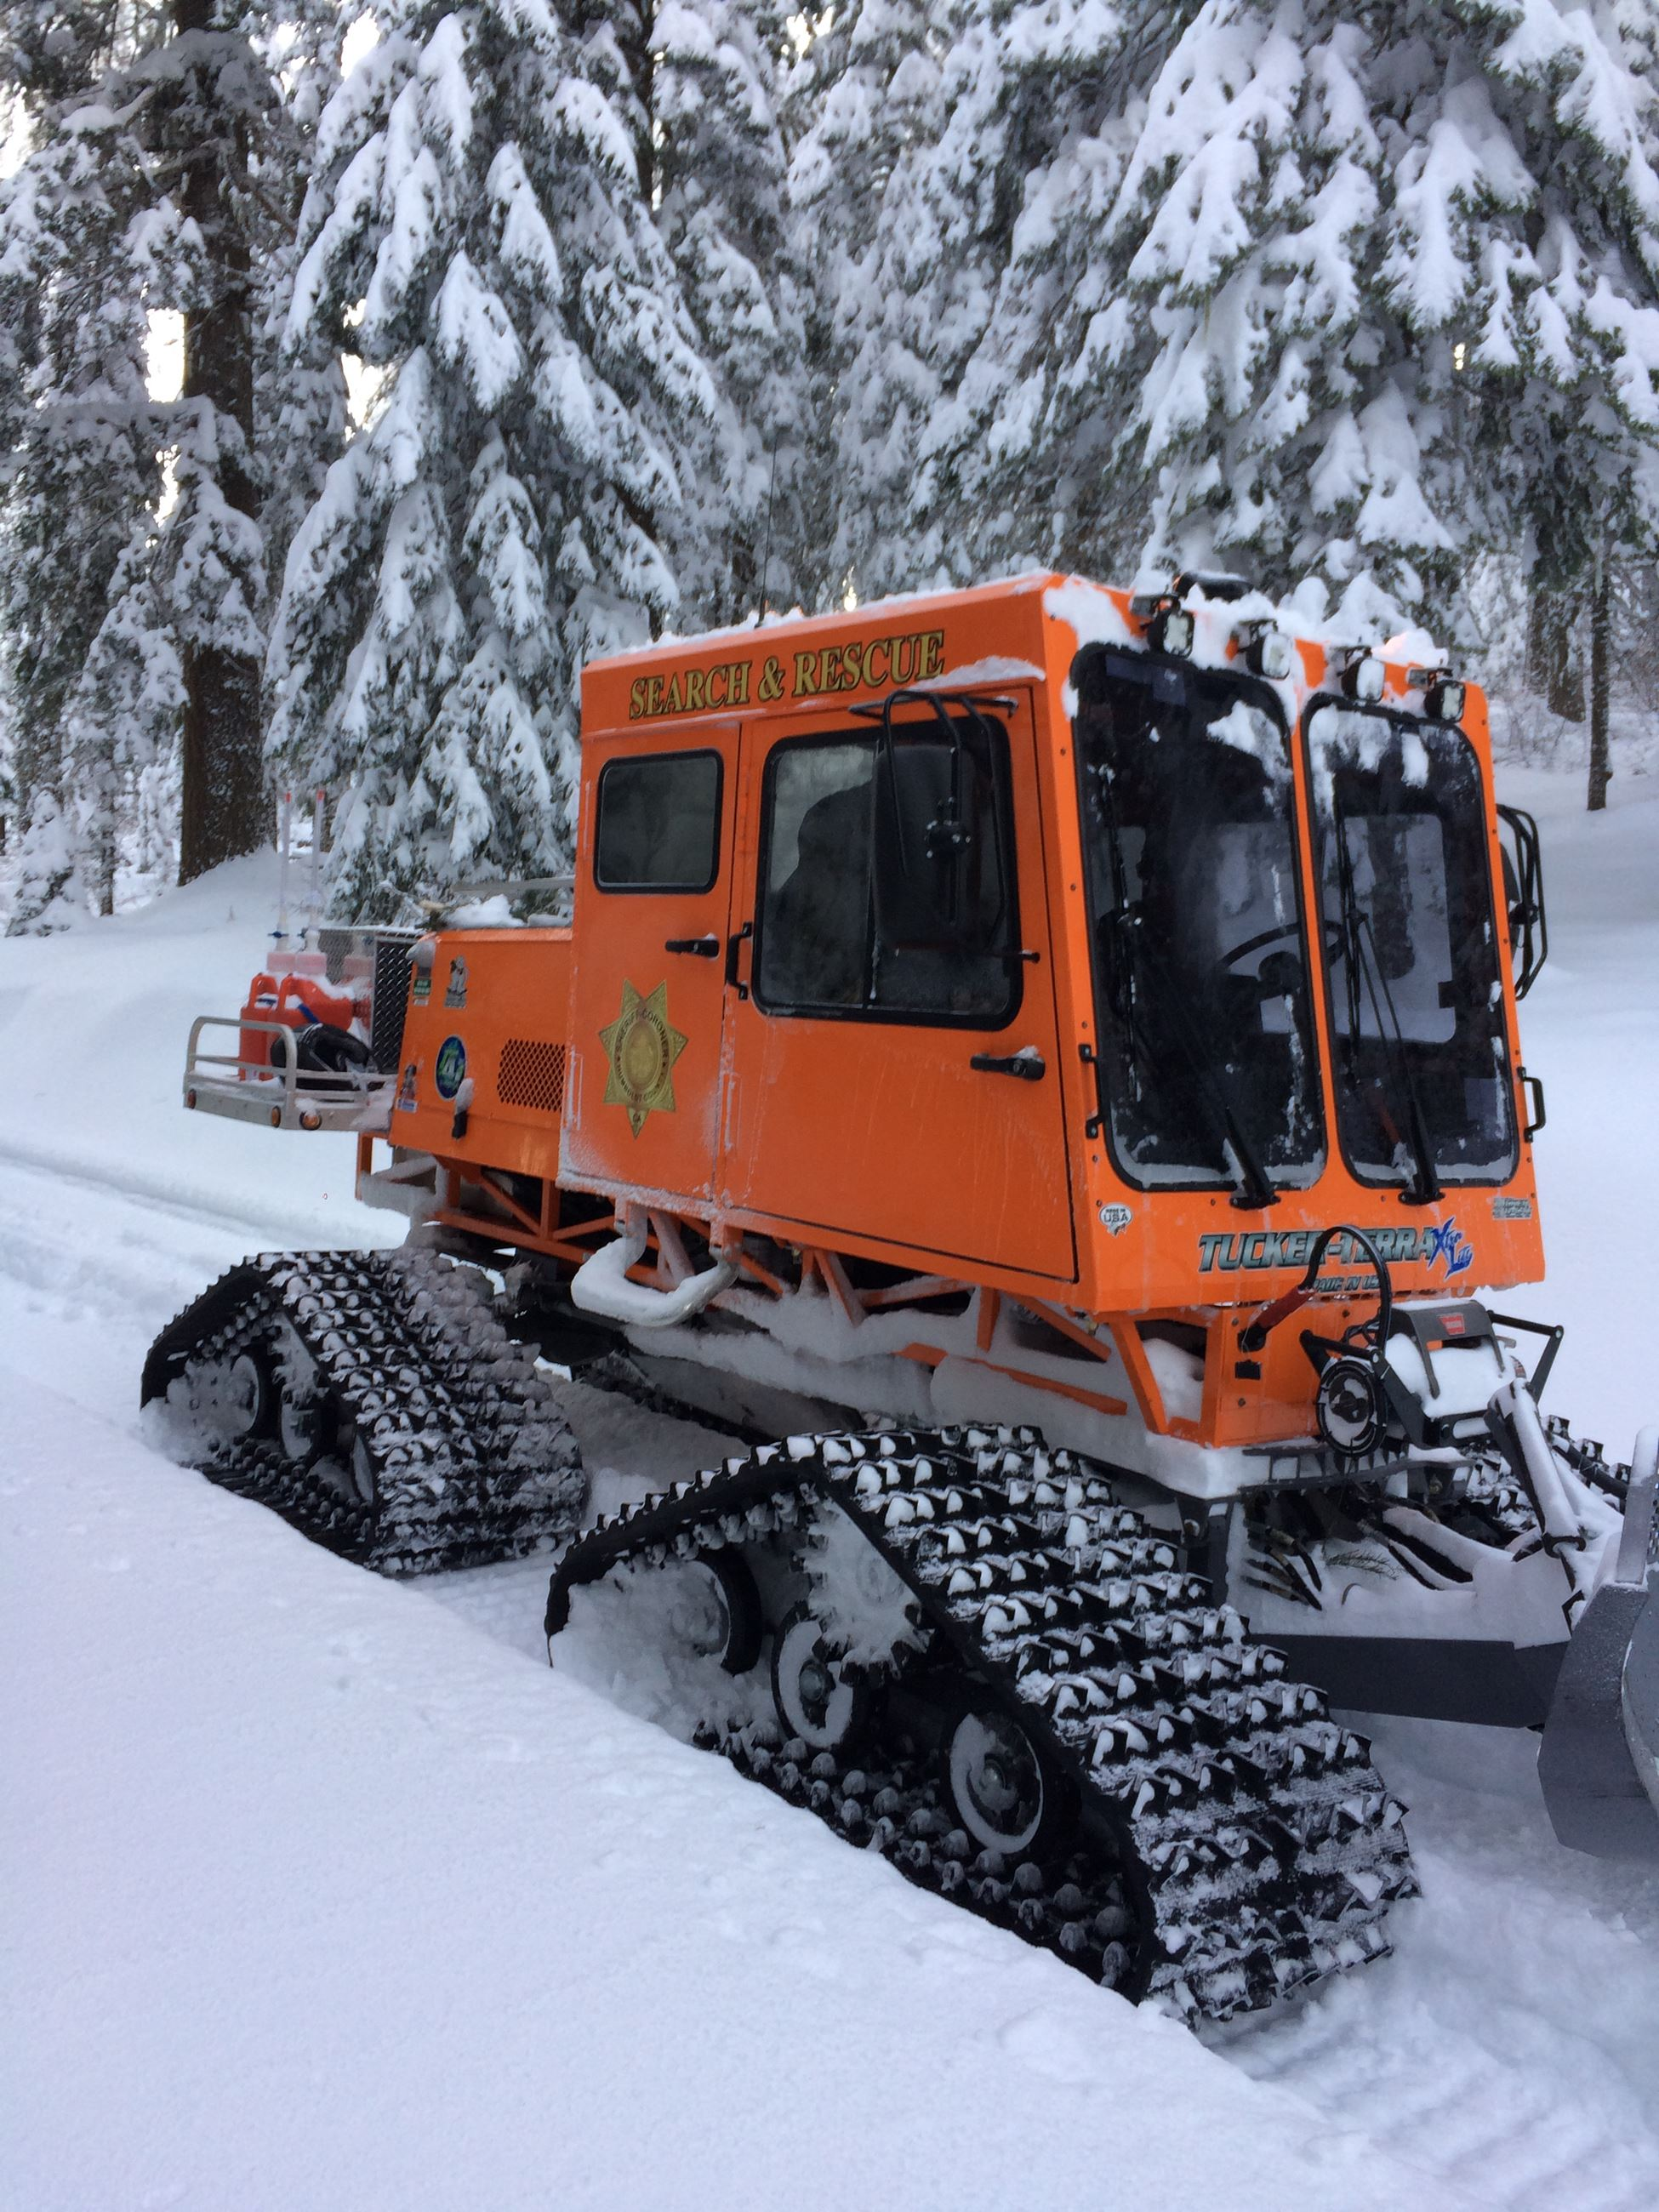 Photo of Sheriff&#39s Sno-Cat rescue vehicle